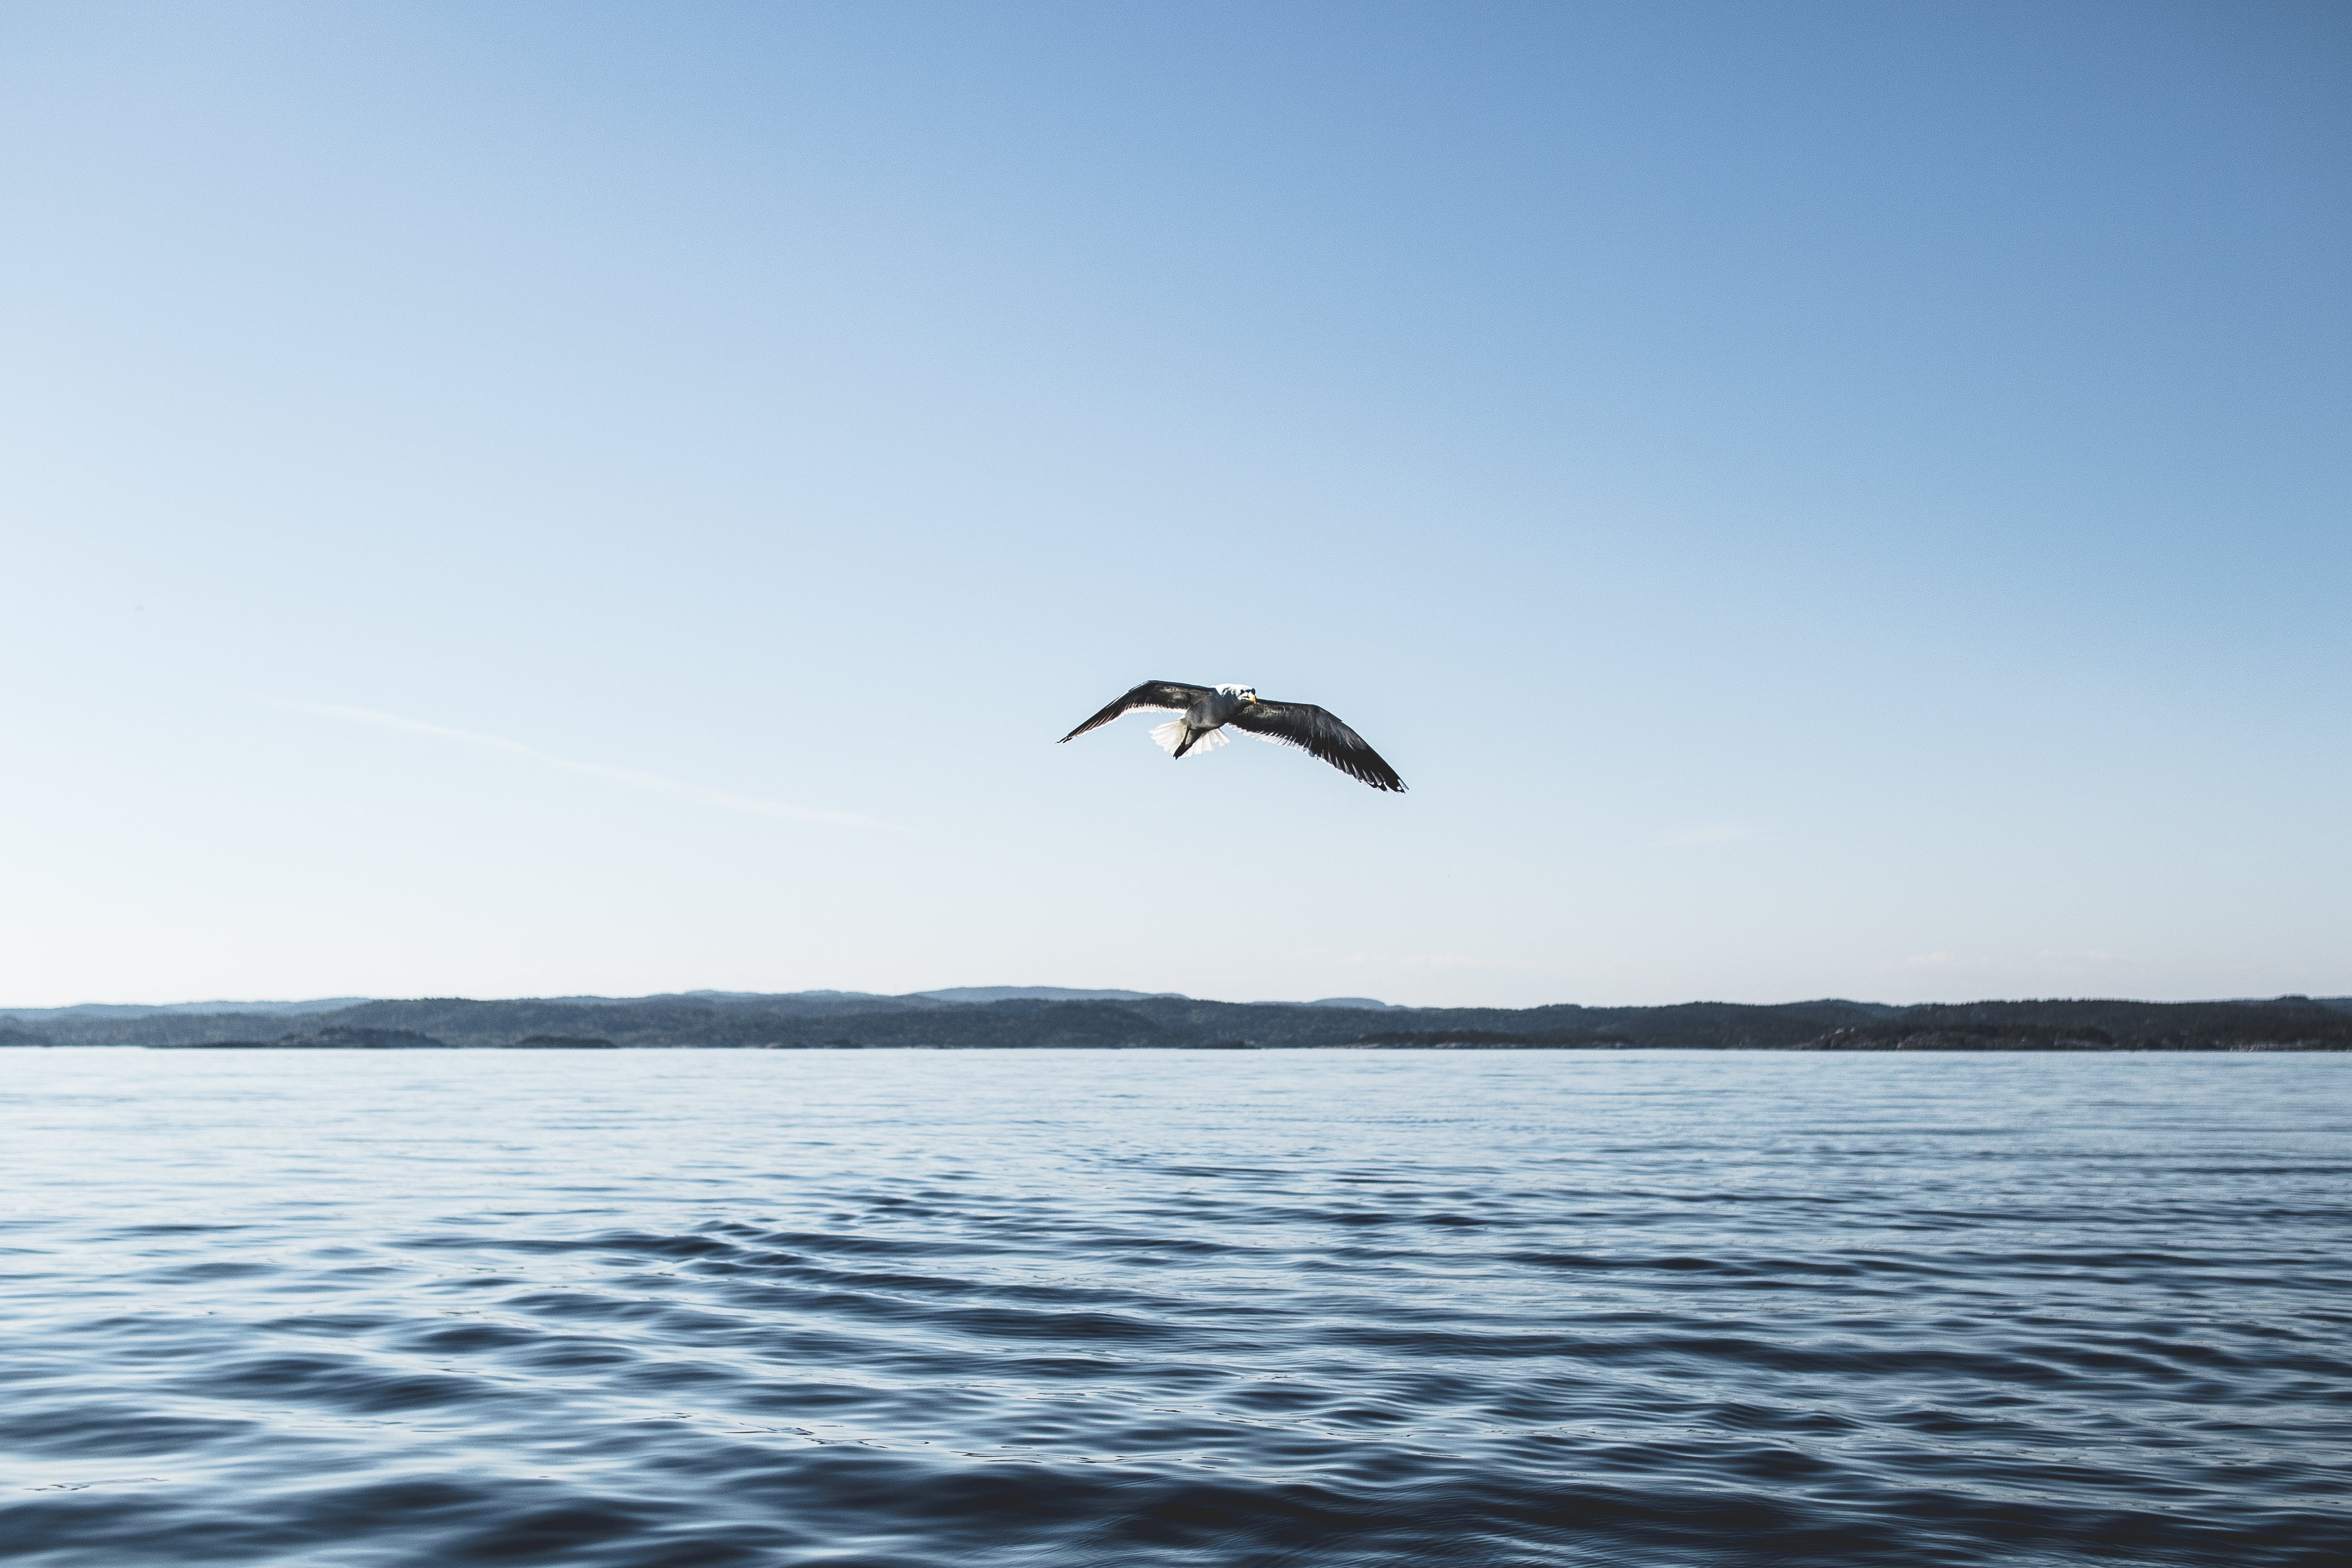 Low Angle Photography of Bird Flying Above Ocean